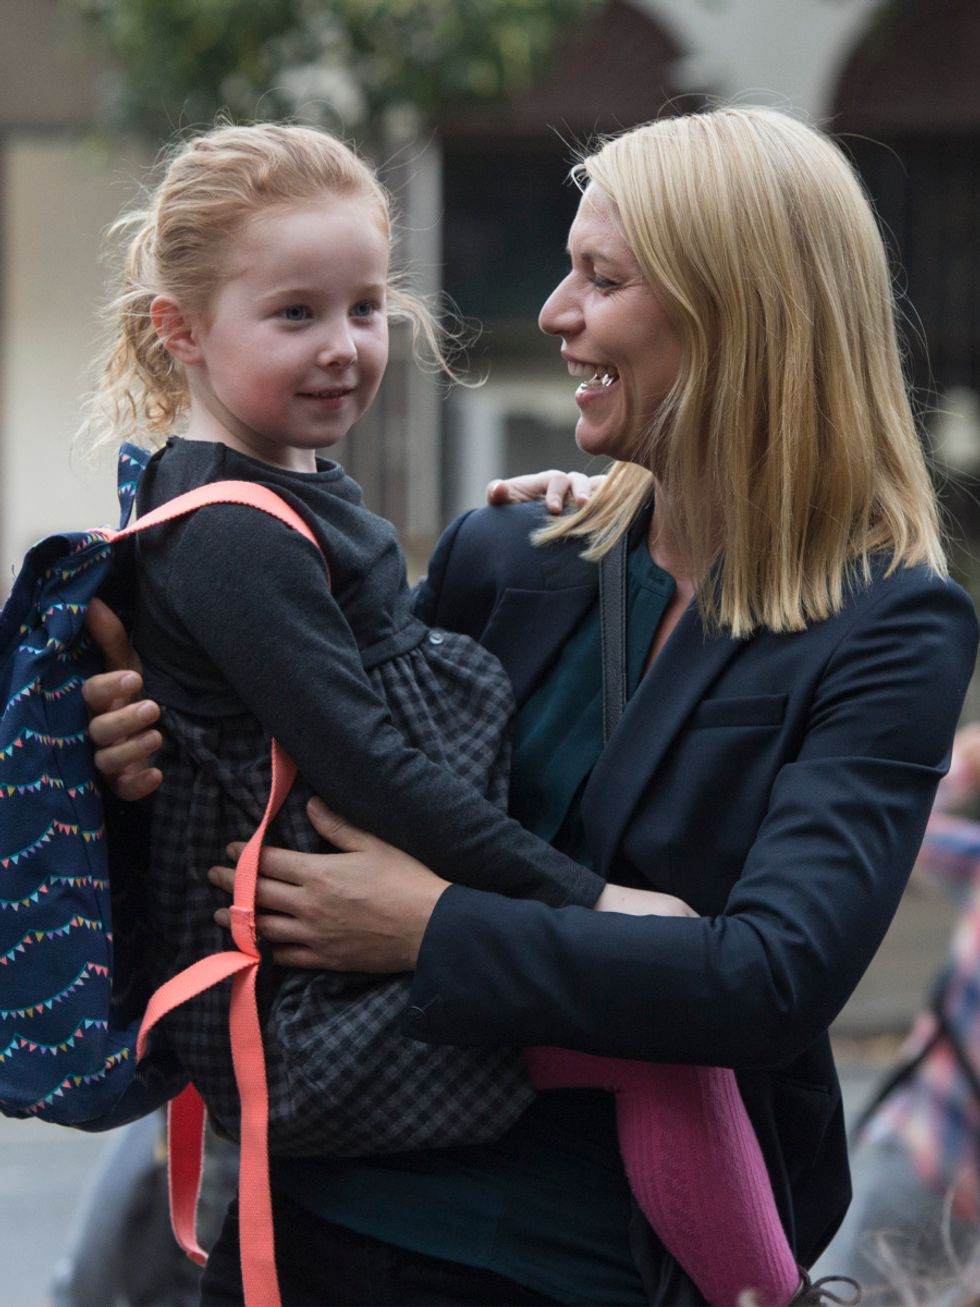 Claire Danes and child actor from TV show Homeland.